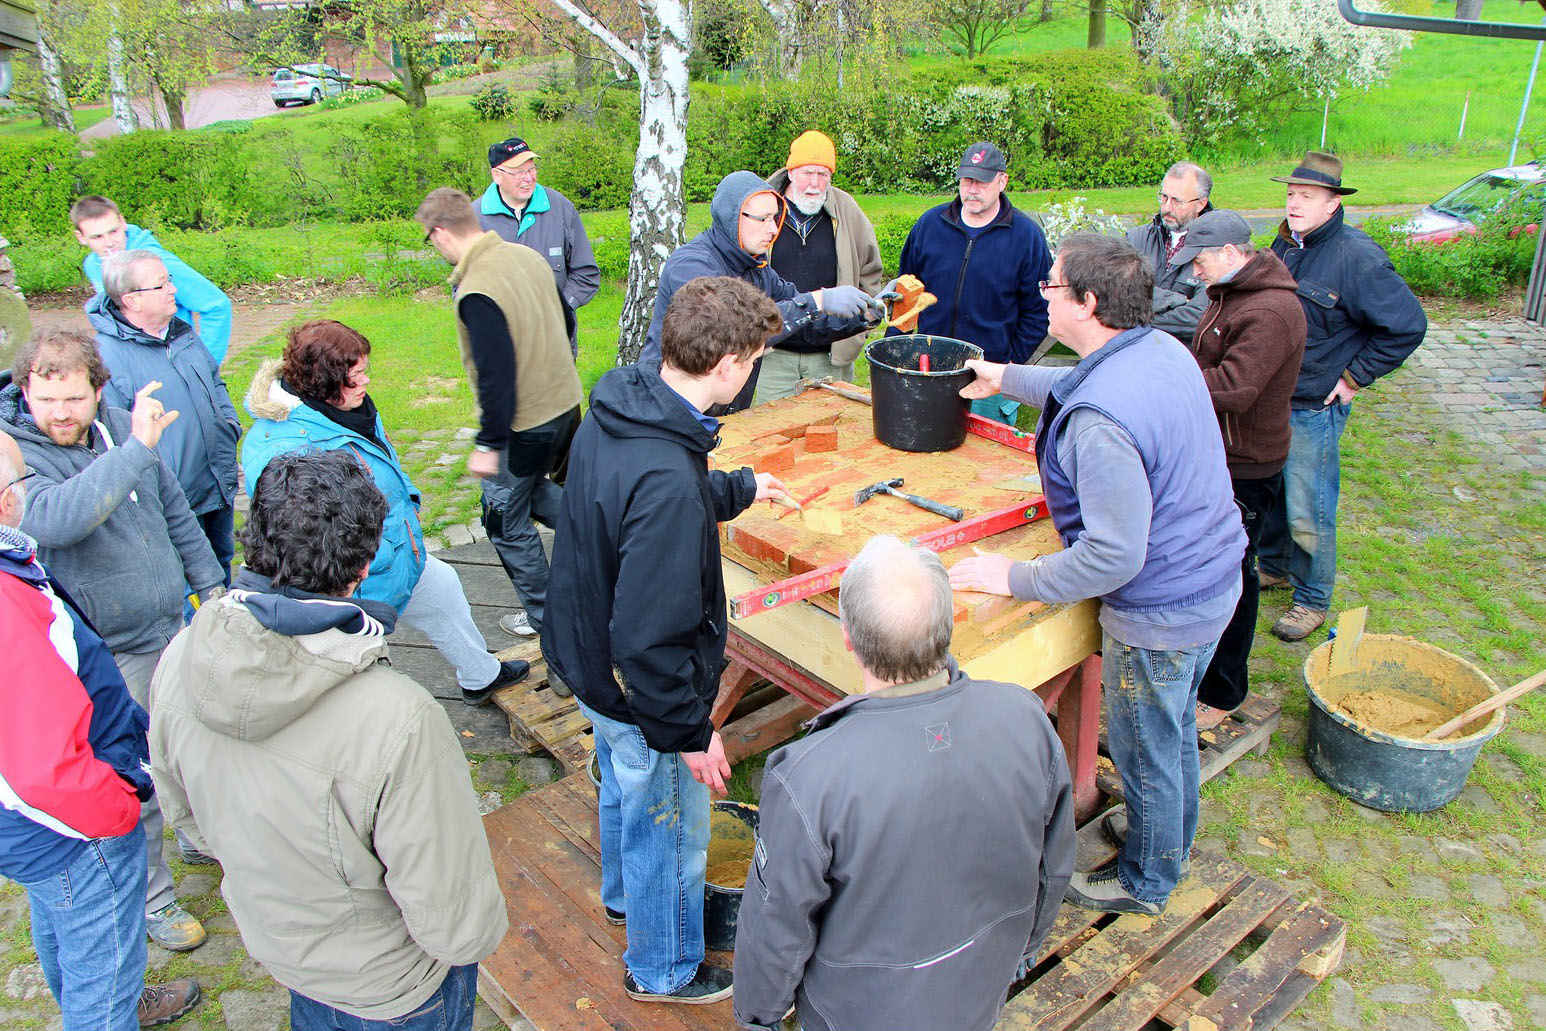 07_ofenbau-workshop_23-04-2016_klein.jpg